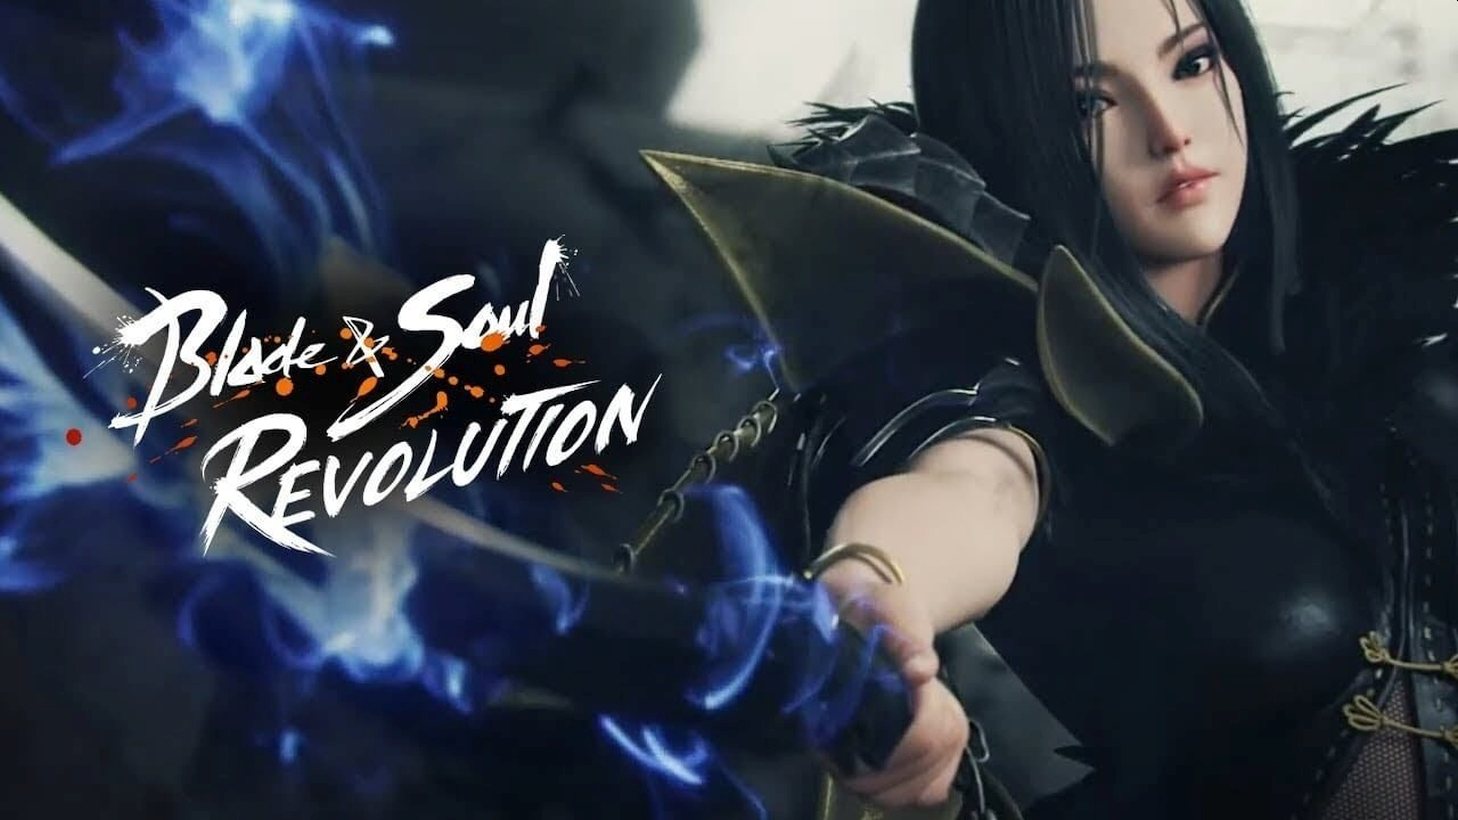 Blade and Soul: Revolution Mobile Release Date Announced With Pre-Registrations Available Now